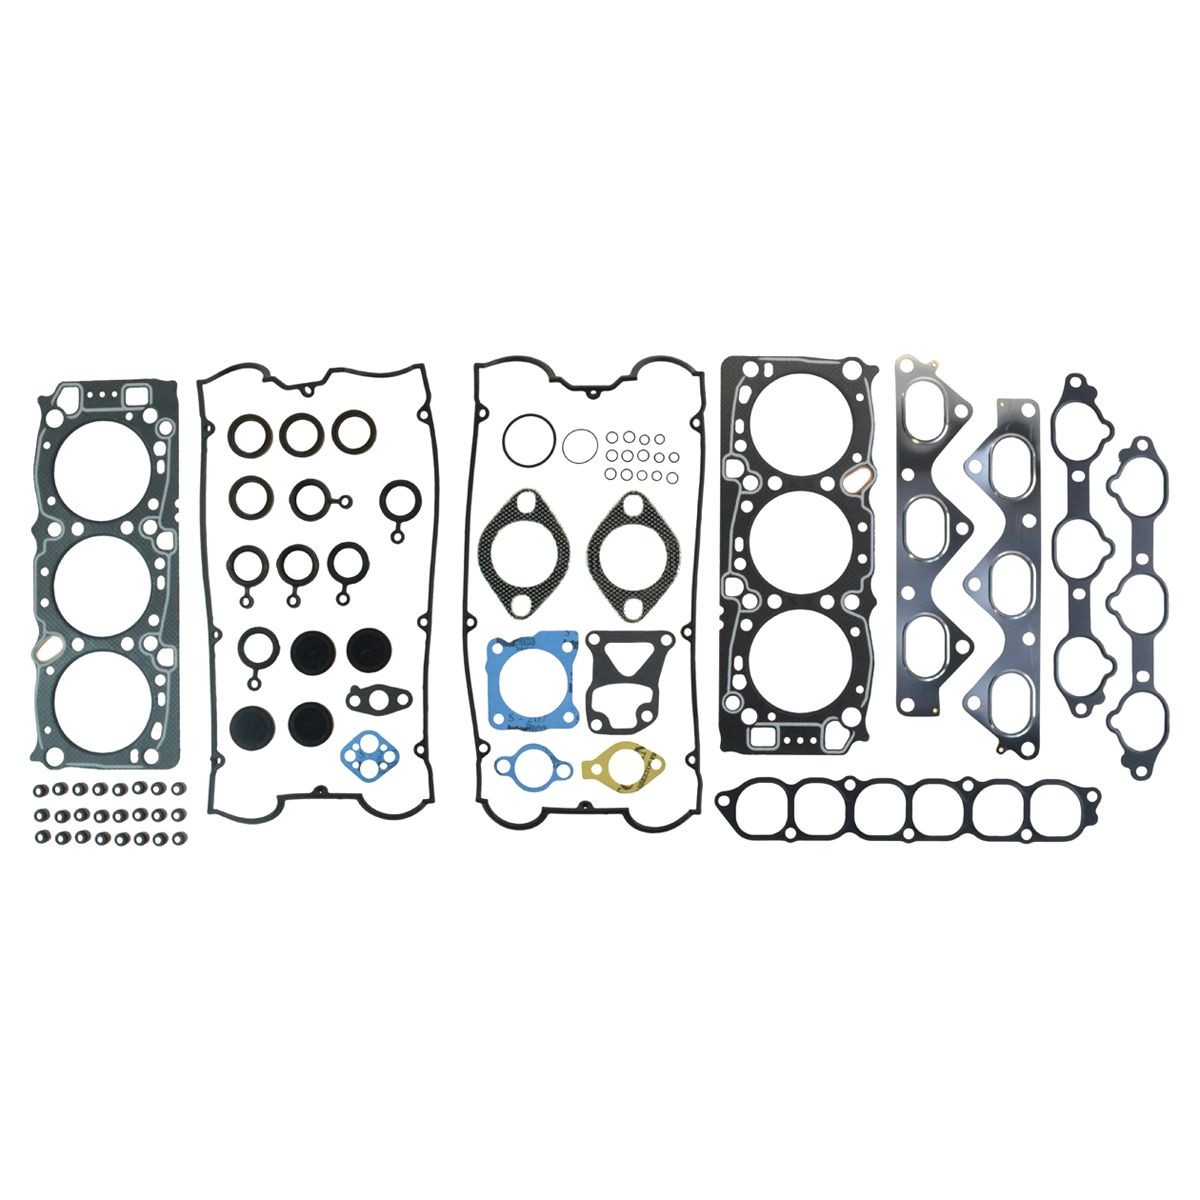 Engine Head Gasket Kit Set for Mitsubishi 3000GT Diamante